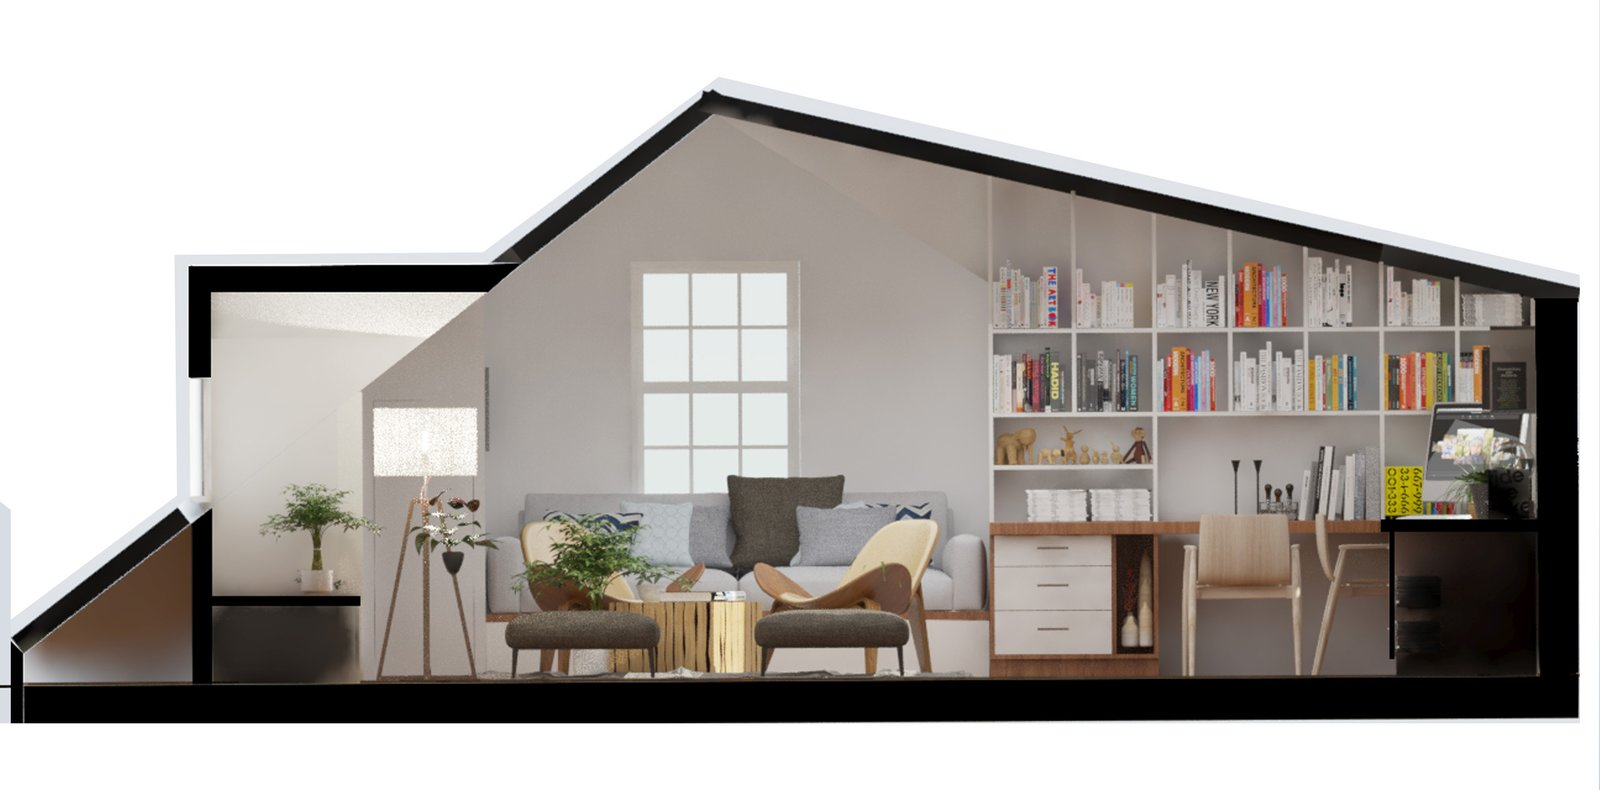 Section view, looking from cabinet  Inspired Flexible Attic Space